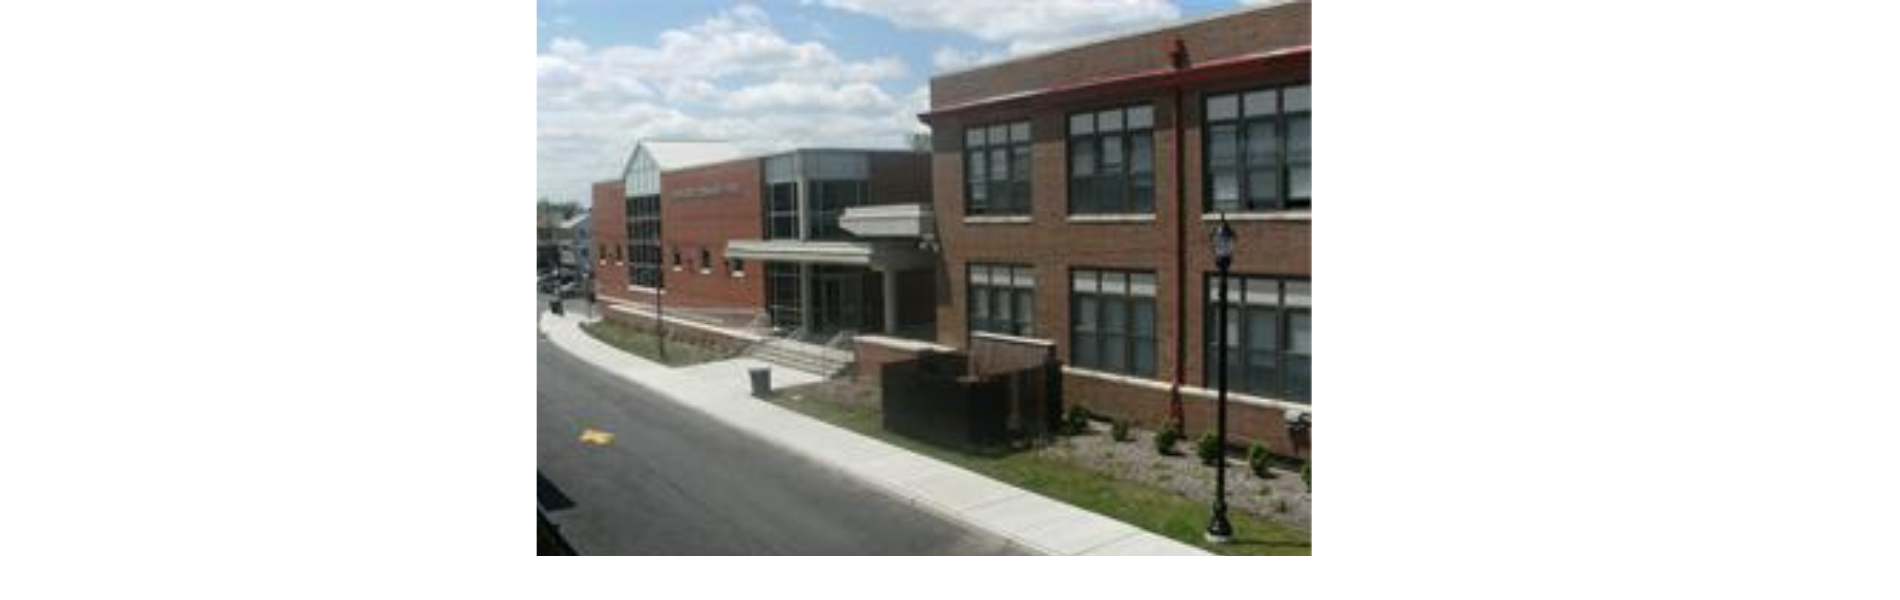 LHS full main entrance